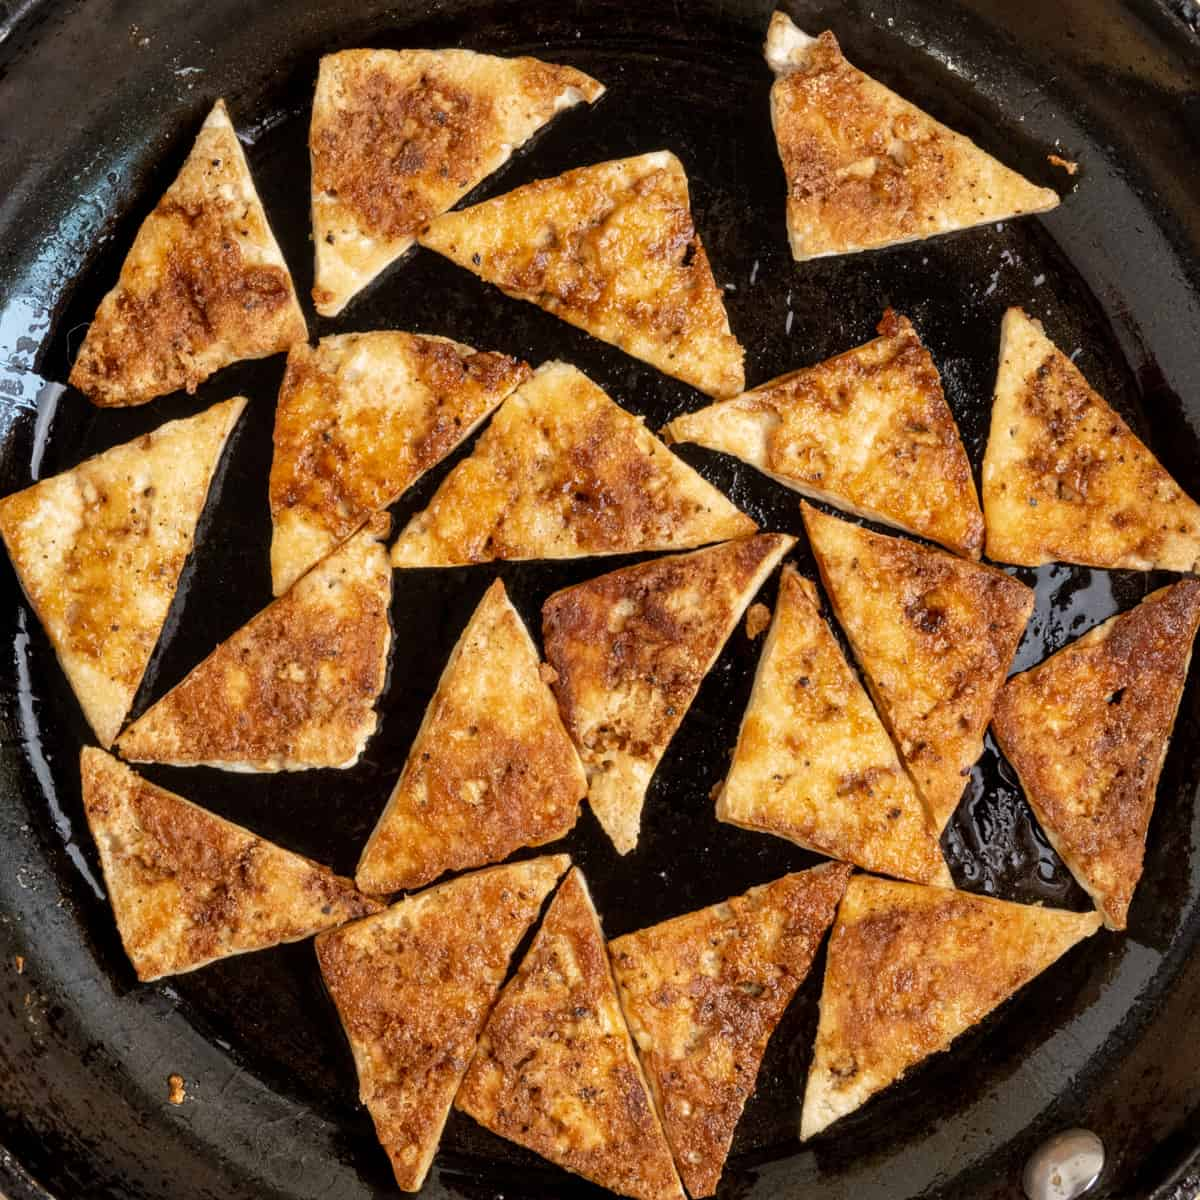 Triangular pieces of golden fried tofu in a frying pan.